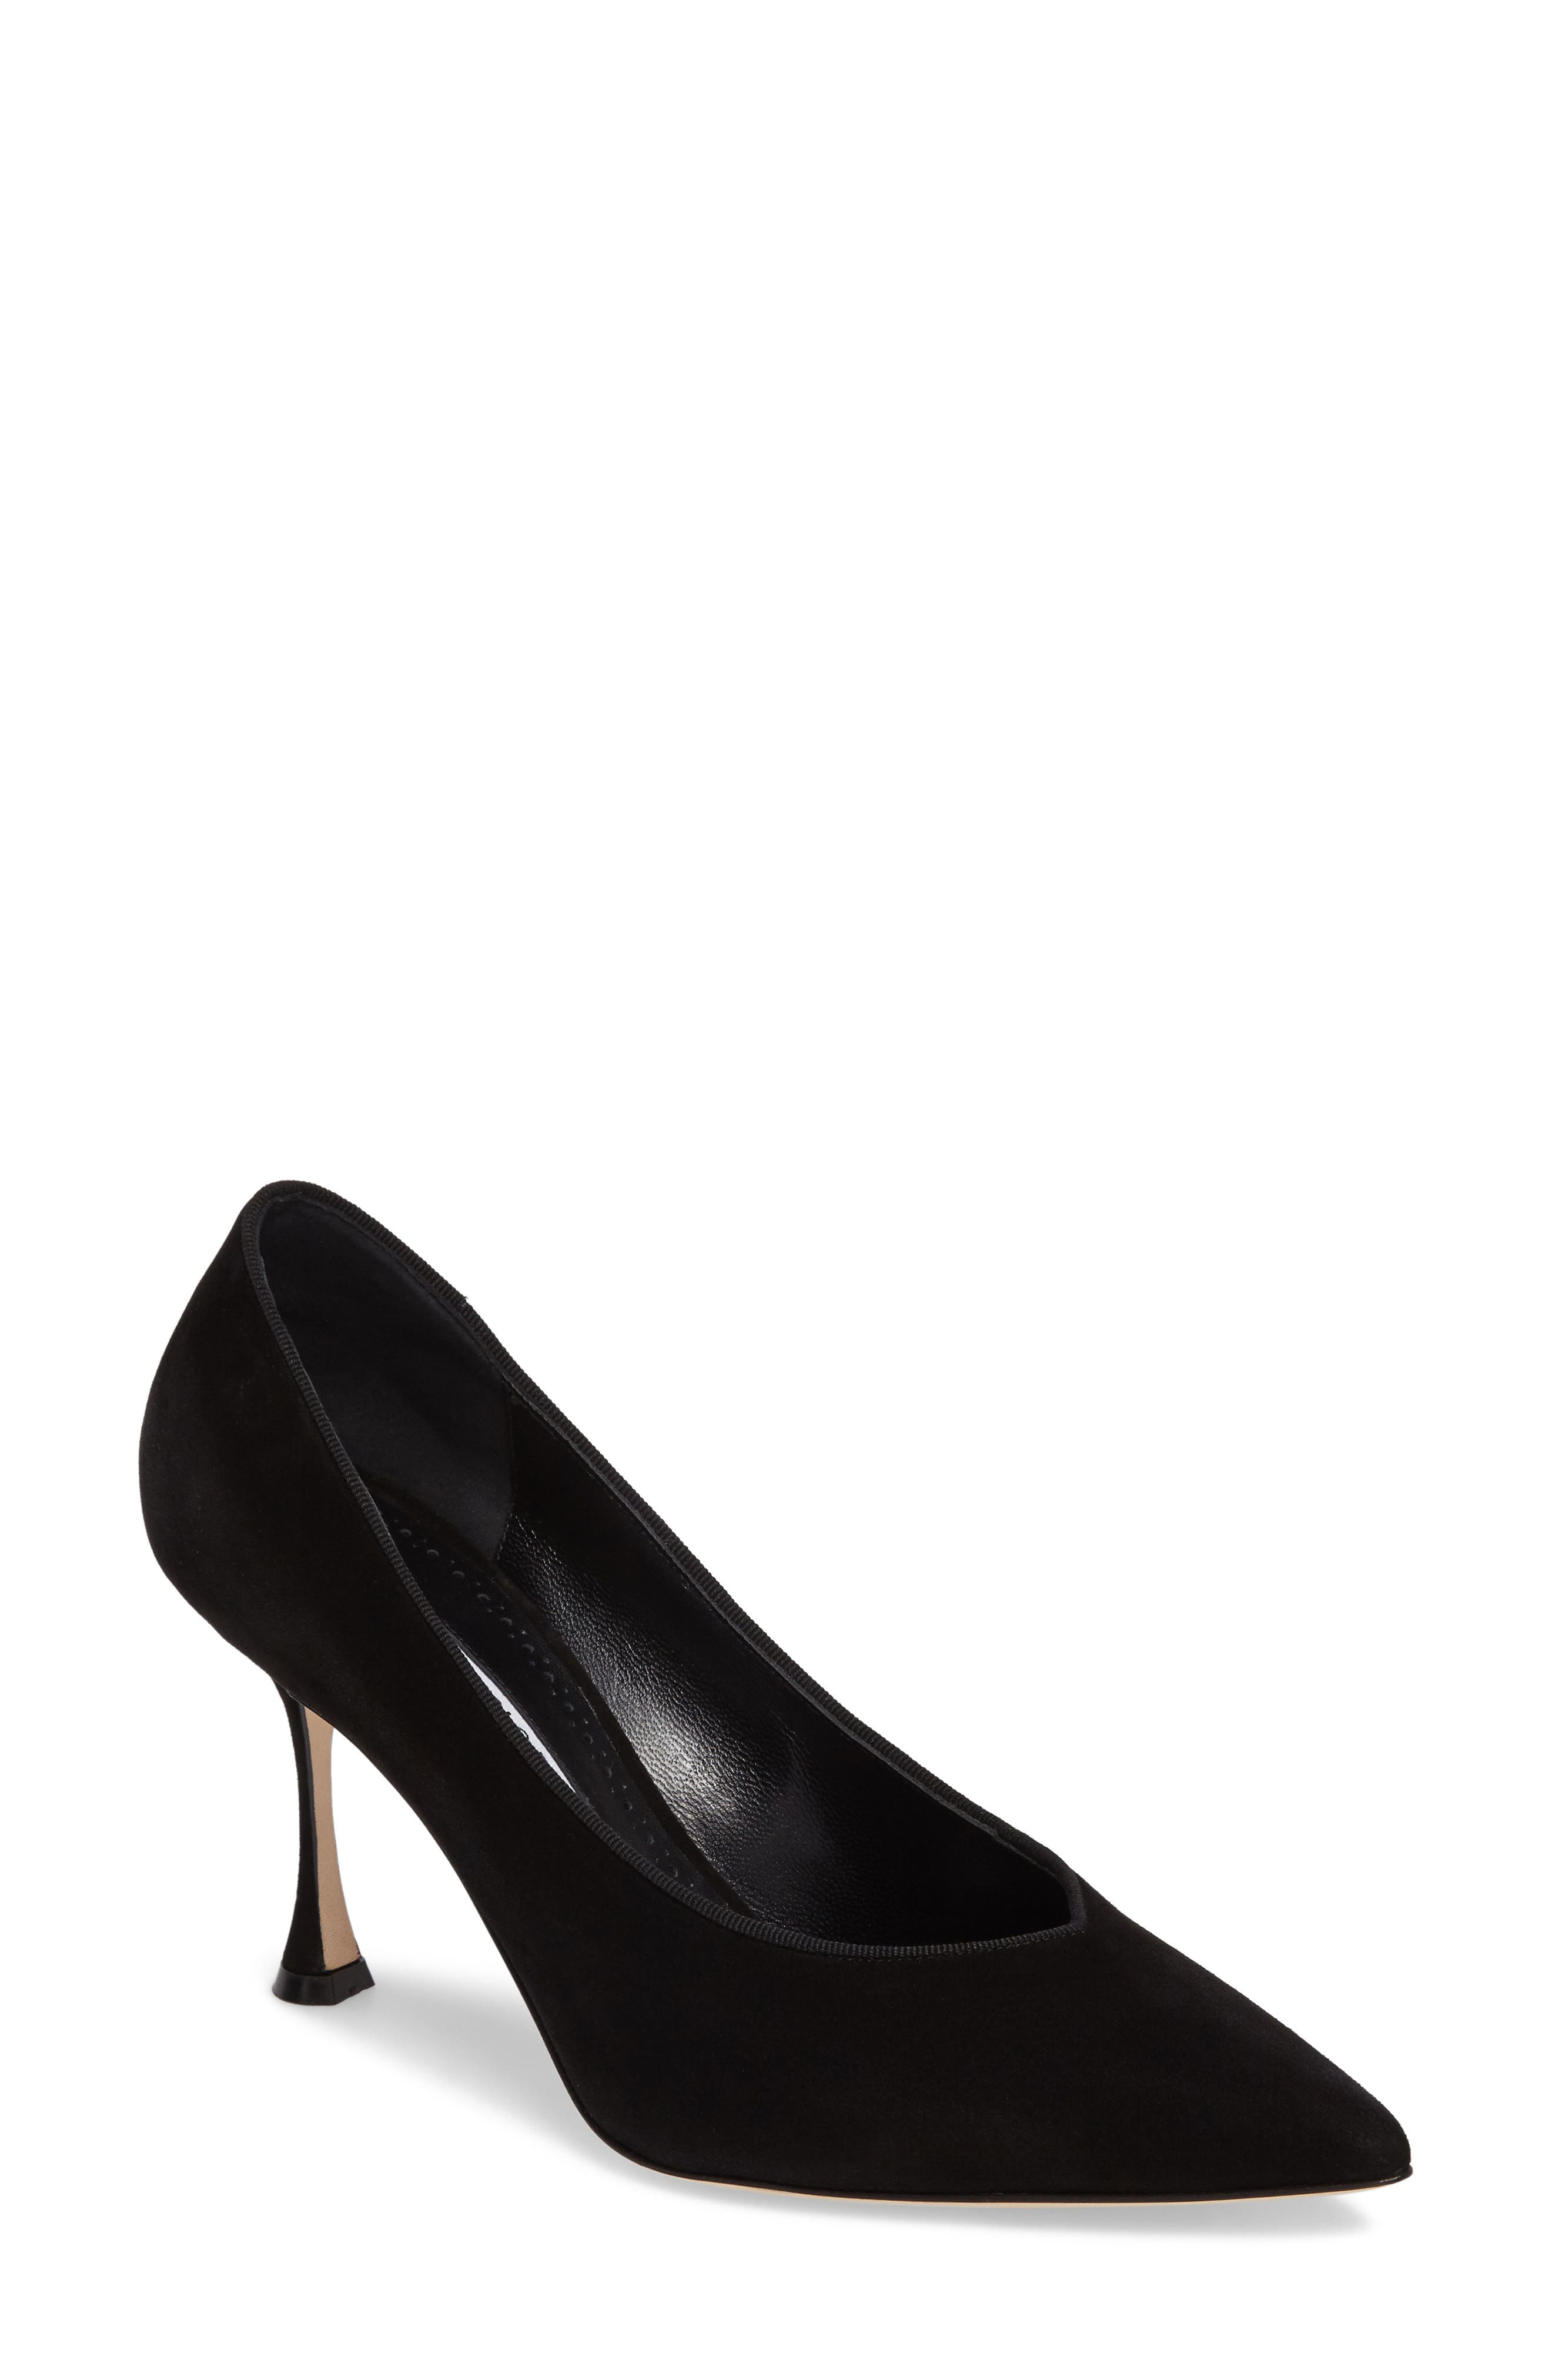 Urgenze Pointy Toe Pump,                             Main thumbnail 1, color,                             Black Suede